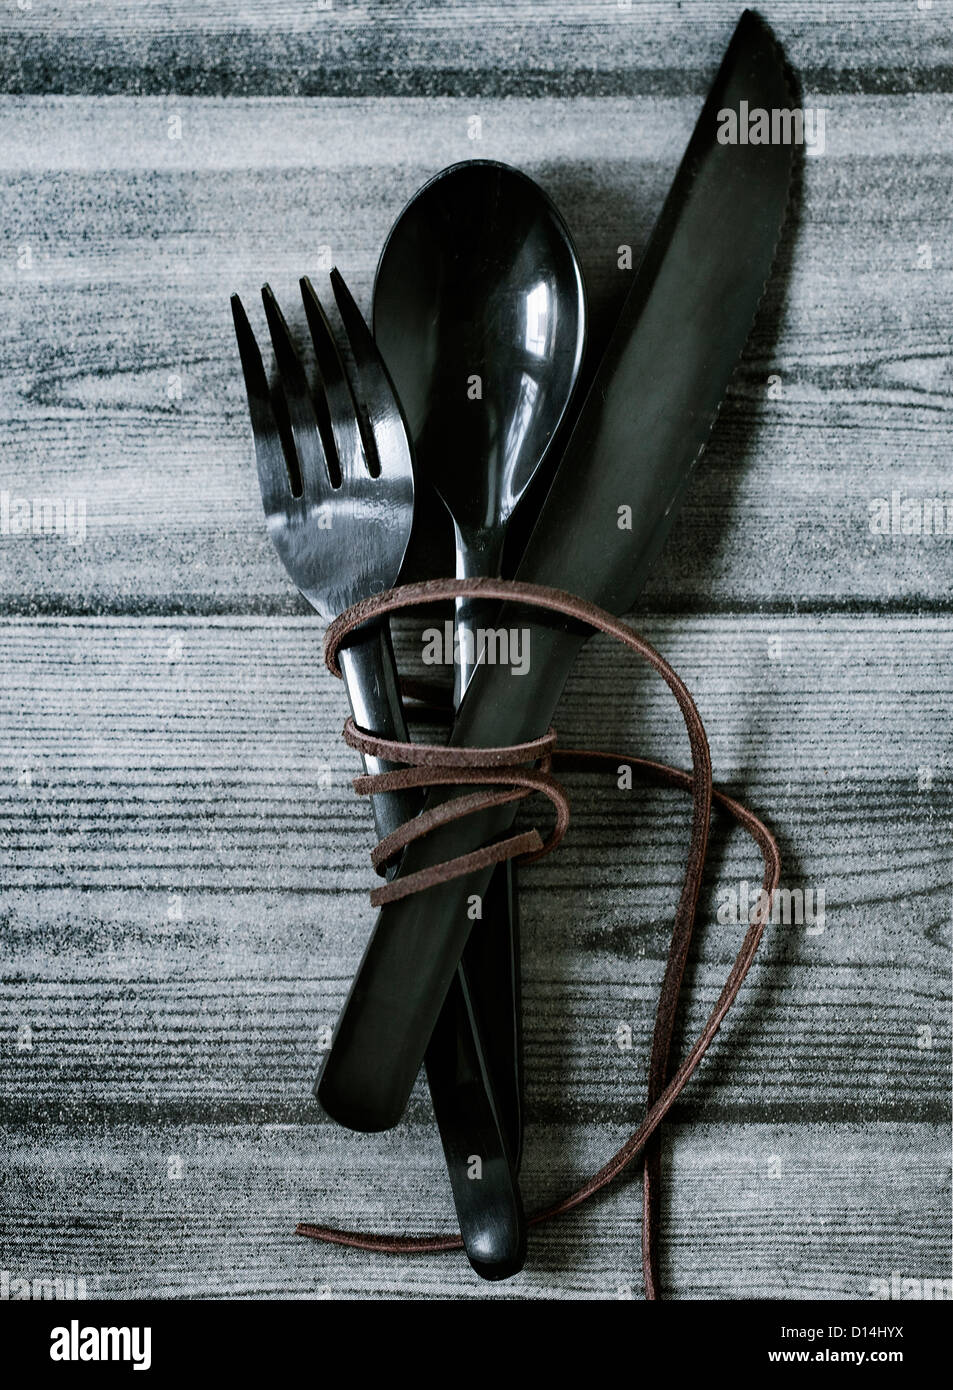 Wrapped cutlery on wooden table - Stock Image